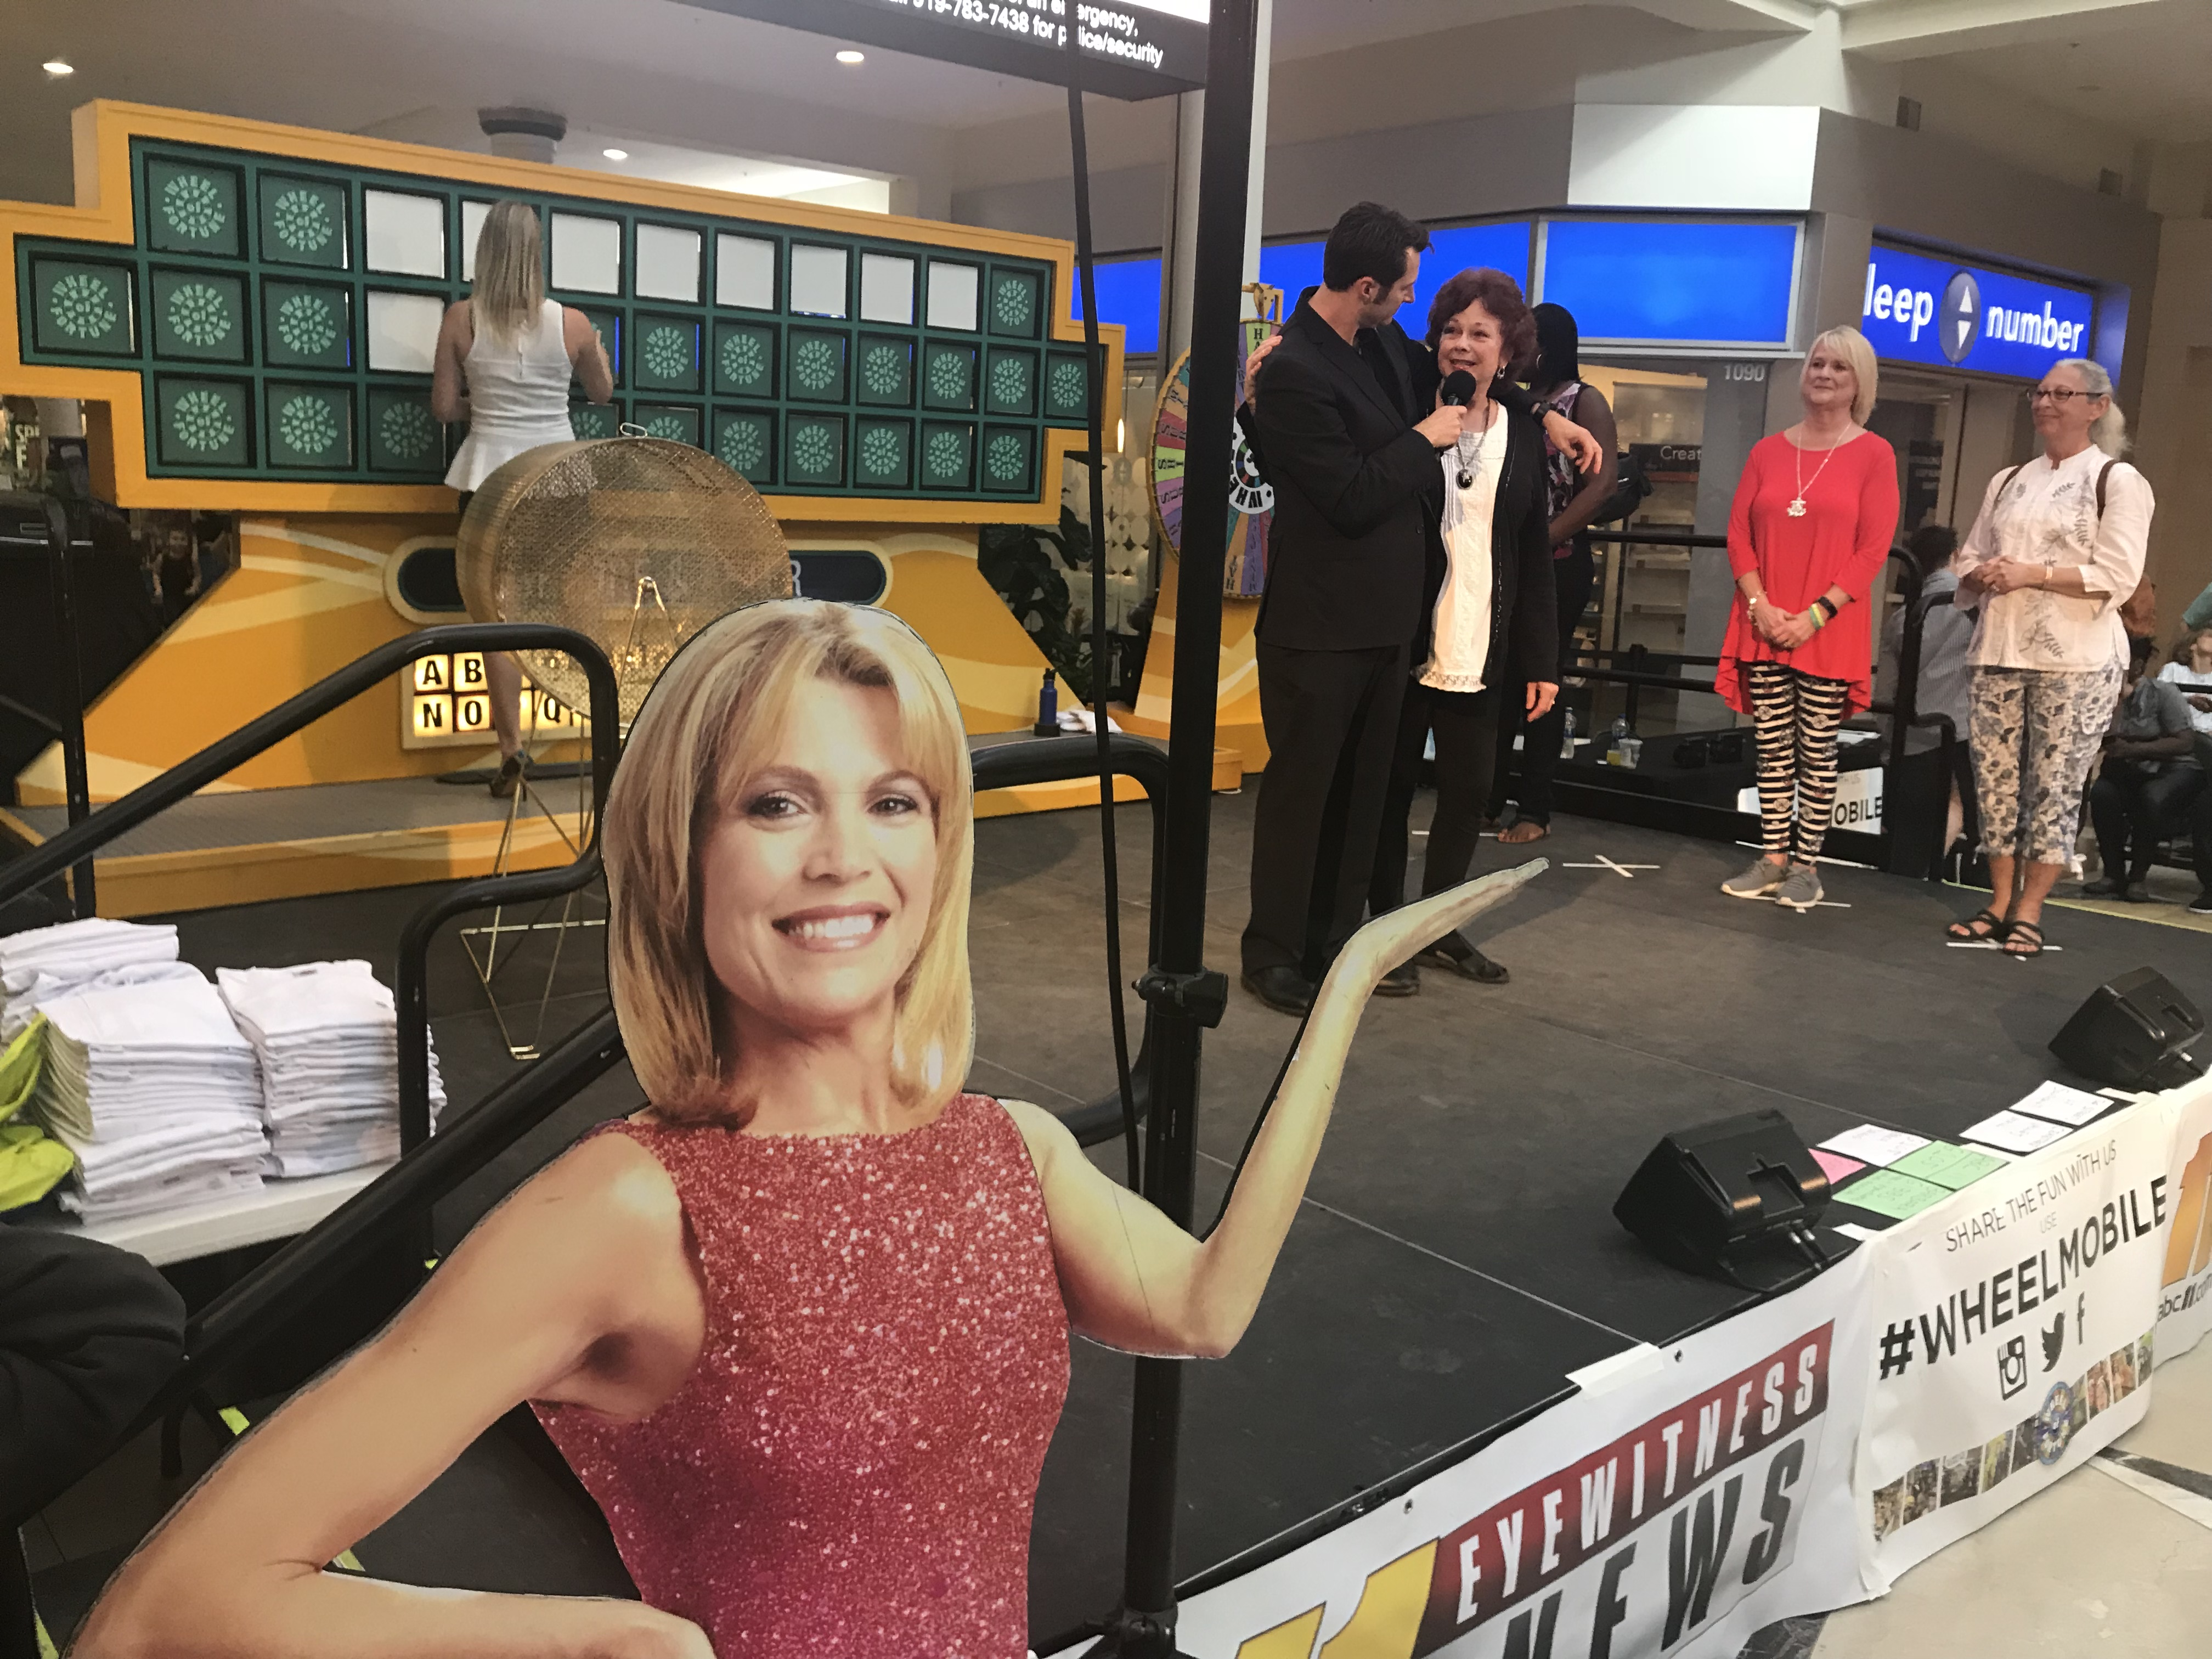 <div class='meta'><div class='origin-logo' data-origin='WTVD'></div><span class='caption-text' data-credit=''>Faces in the crowd at Wheel of Fortune in Raleigh.</span></div>